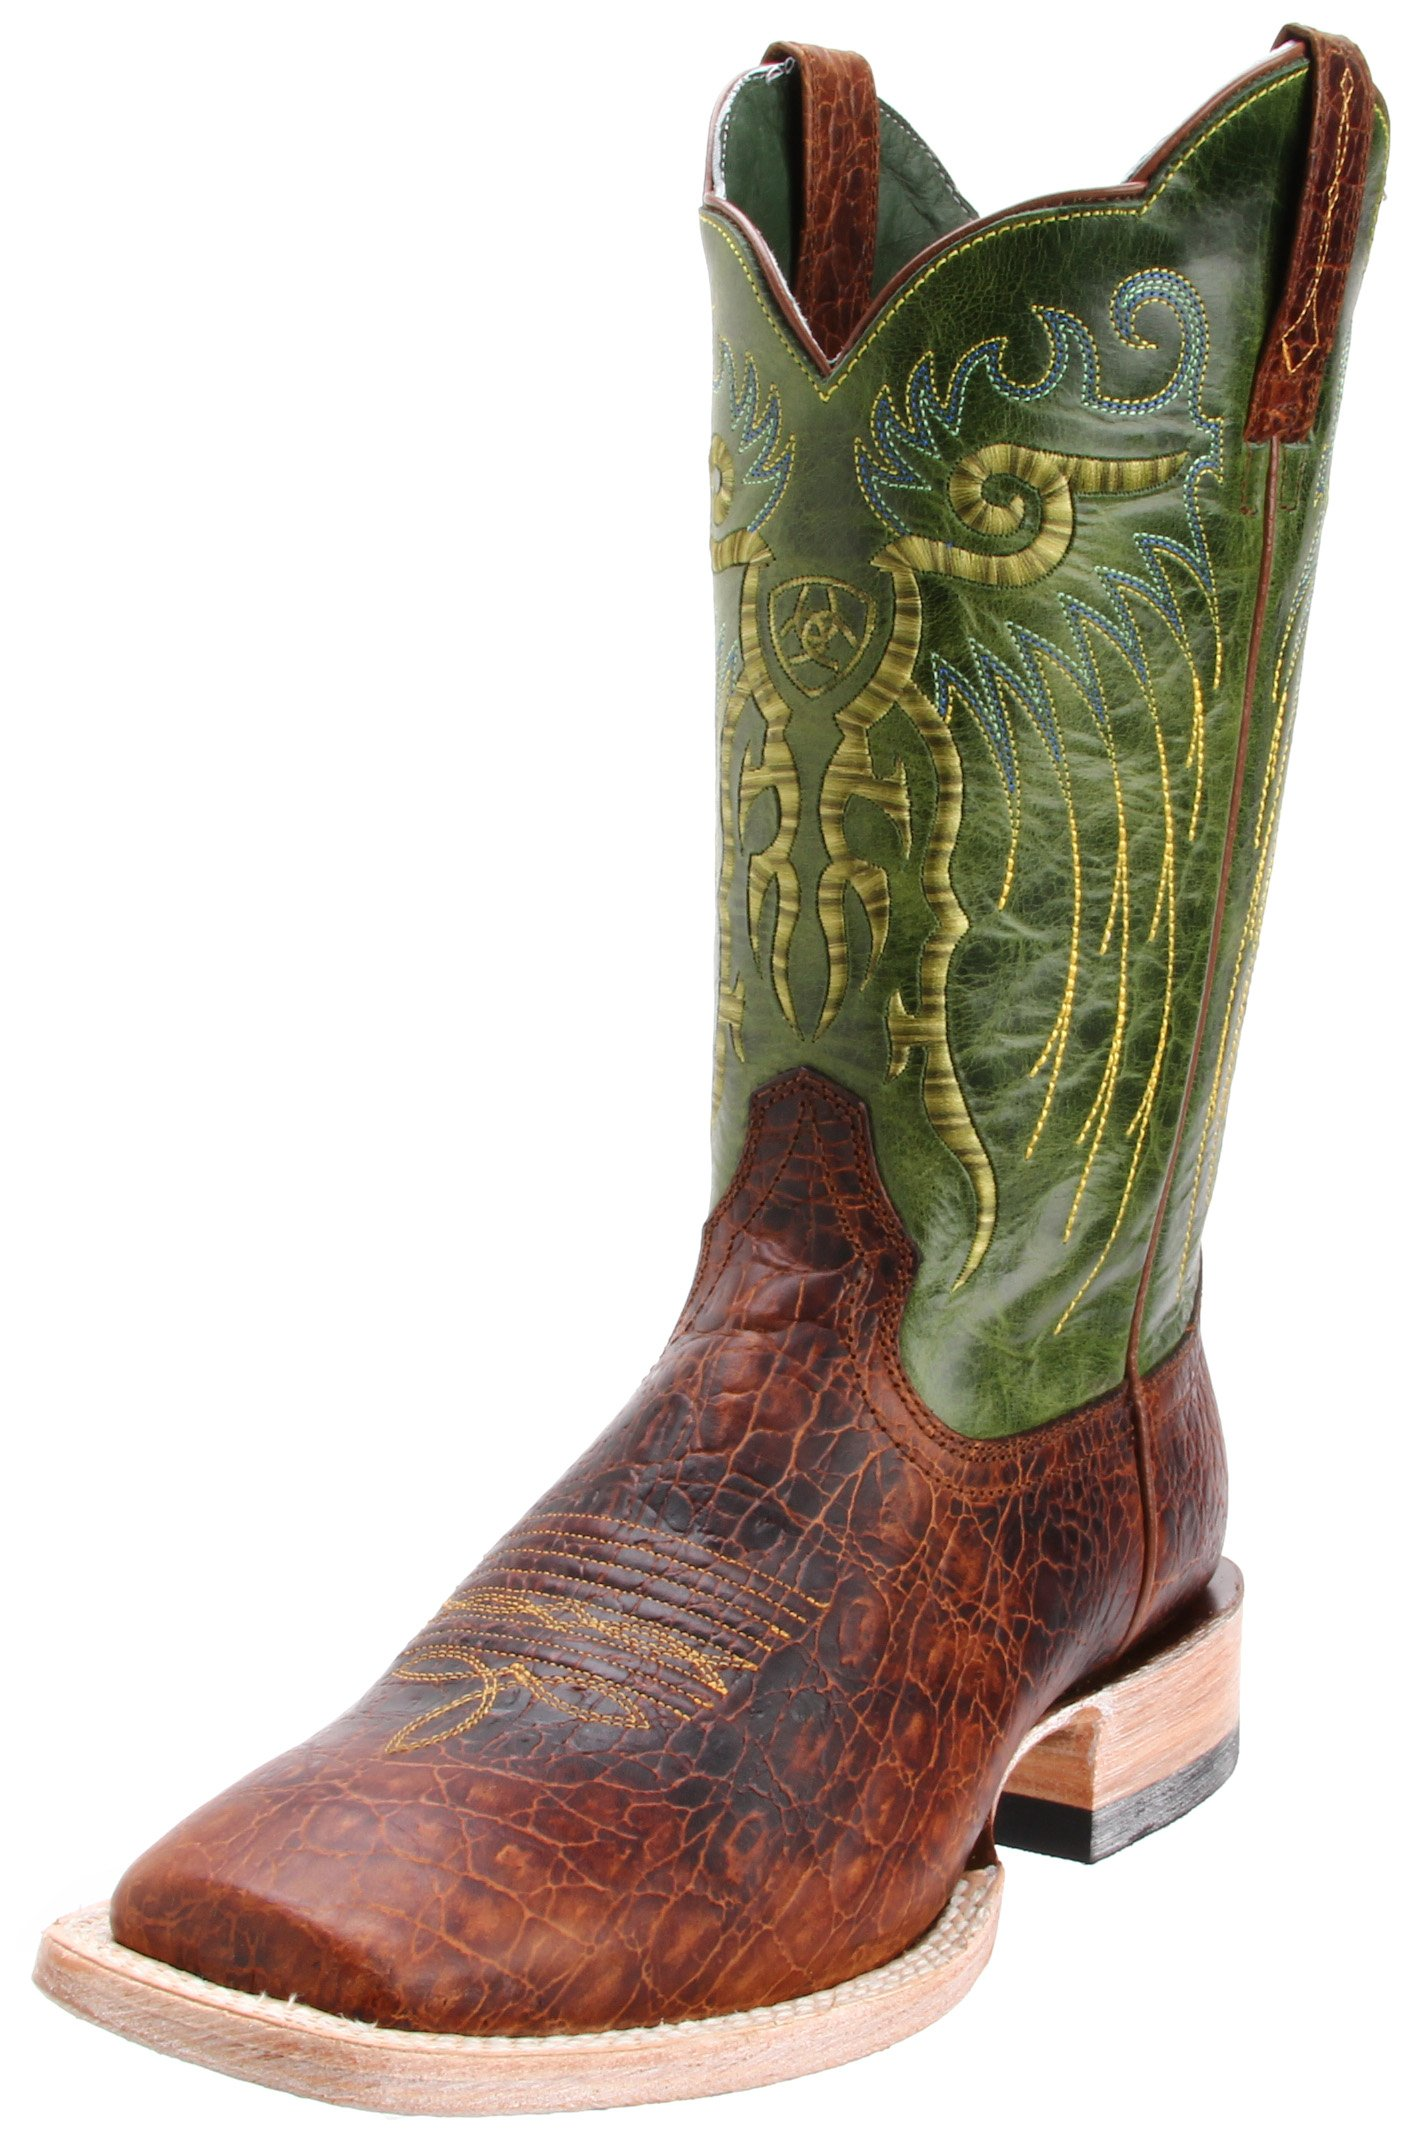 Ariat Men's Mesteno Western Cowboy Boot, Adobe Clay/Neon Lime, 13 M US